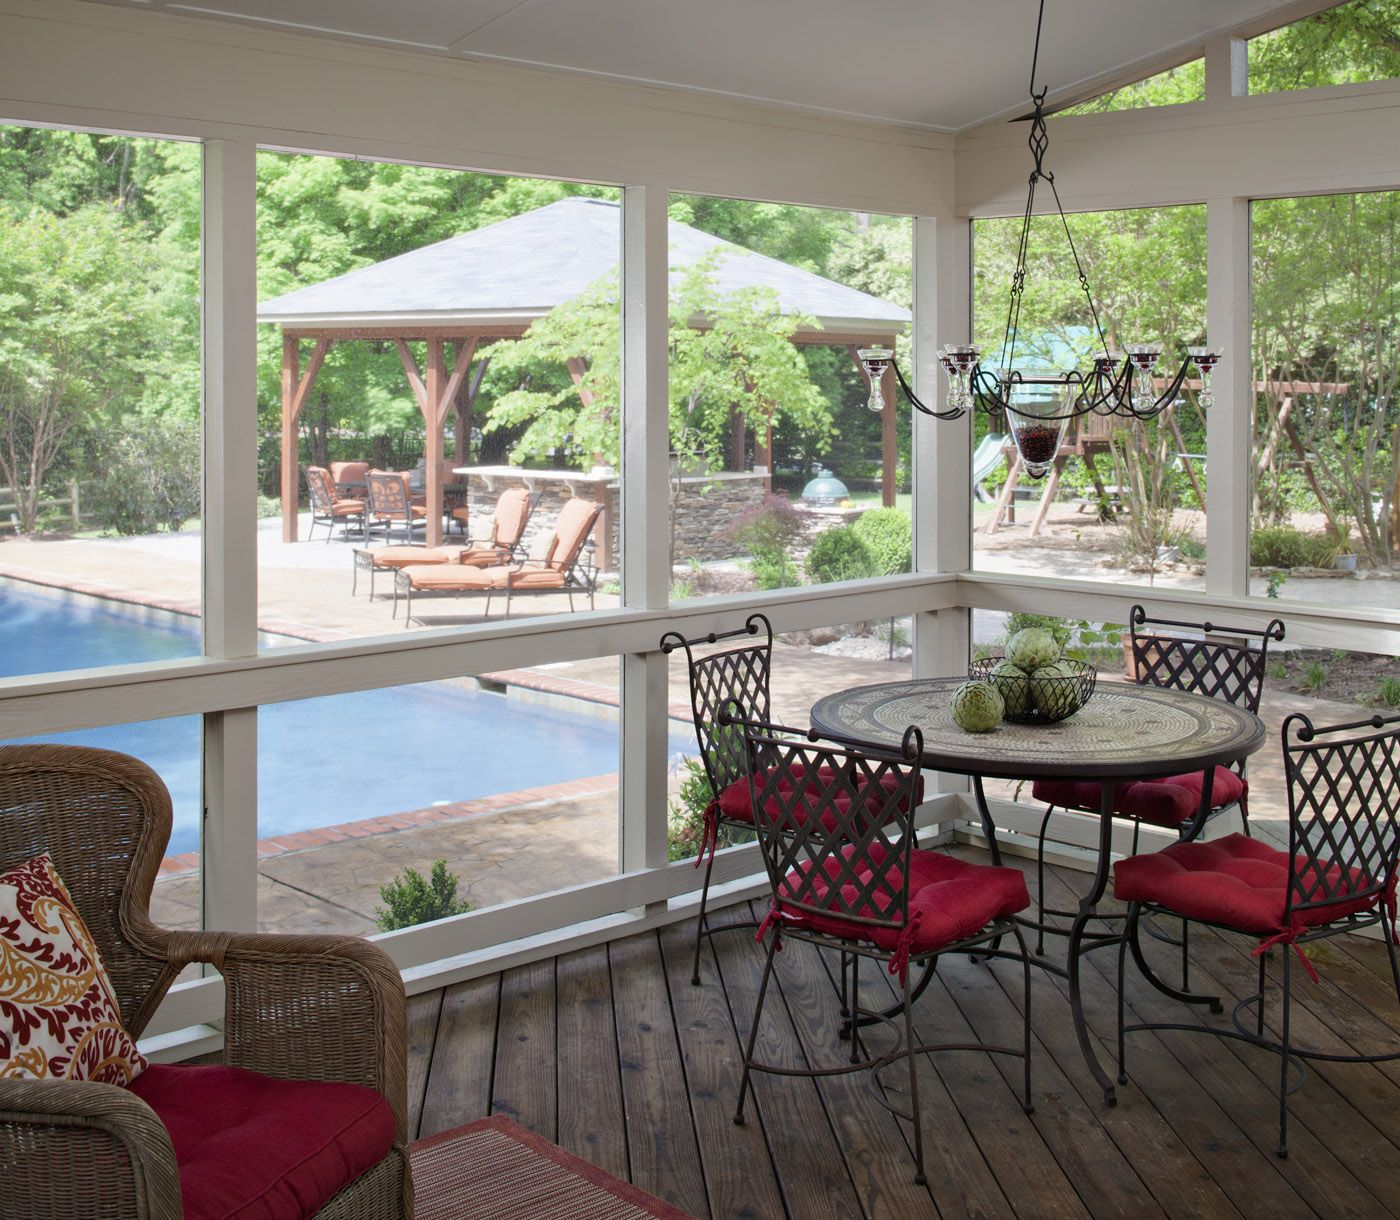 Enclosed Porch Decorating Ideas: Winston Salem Screened Porch Overlooking Pool